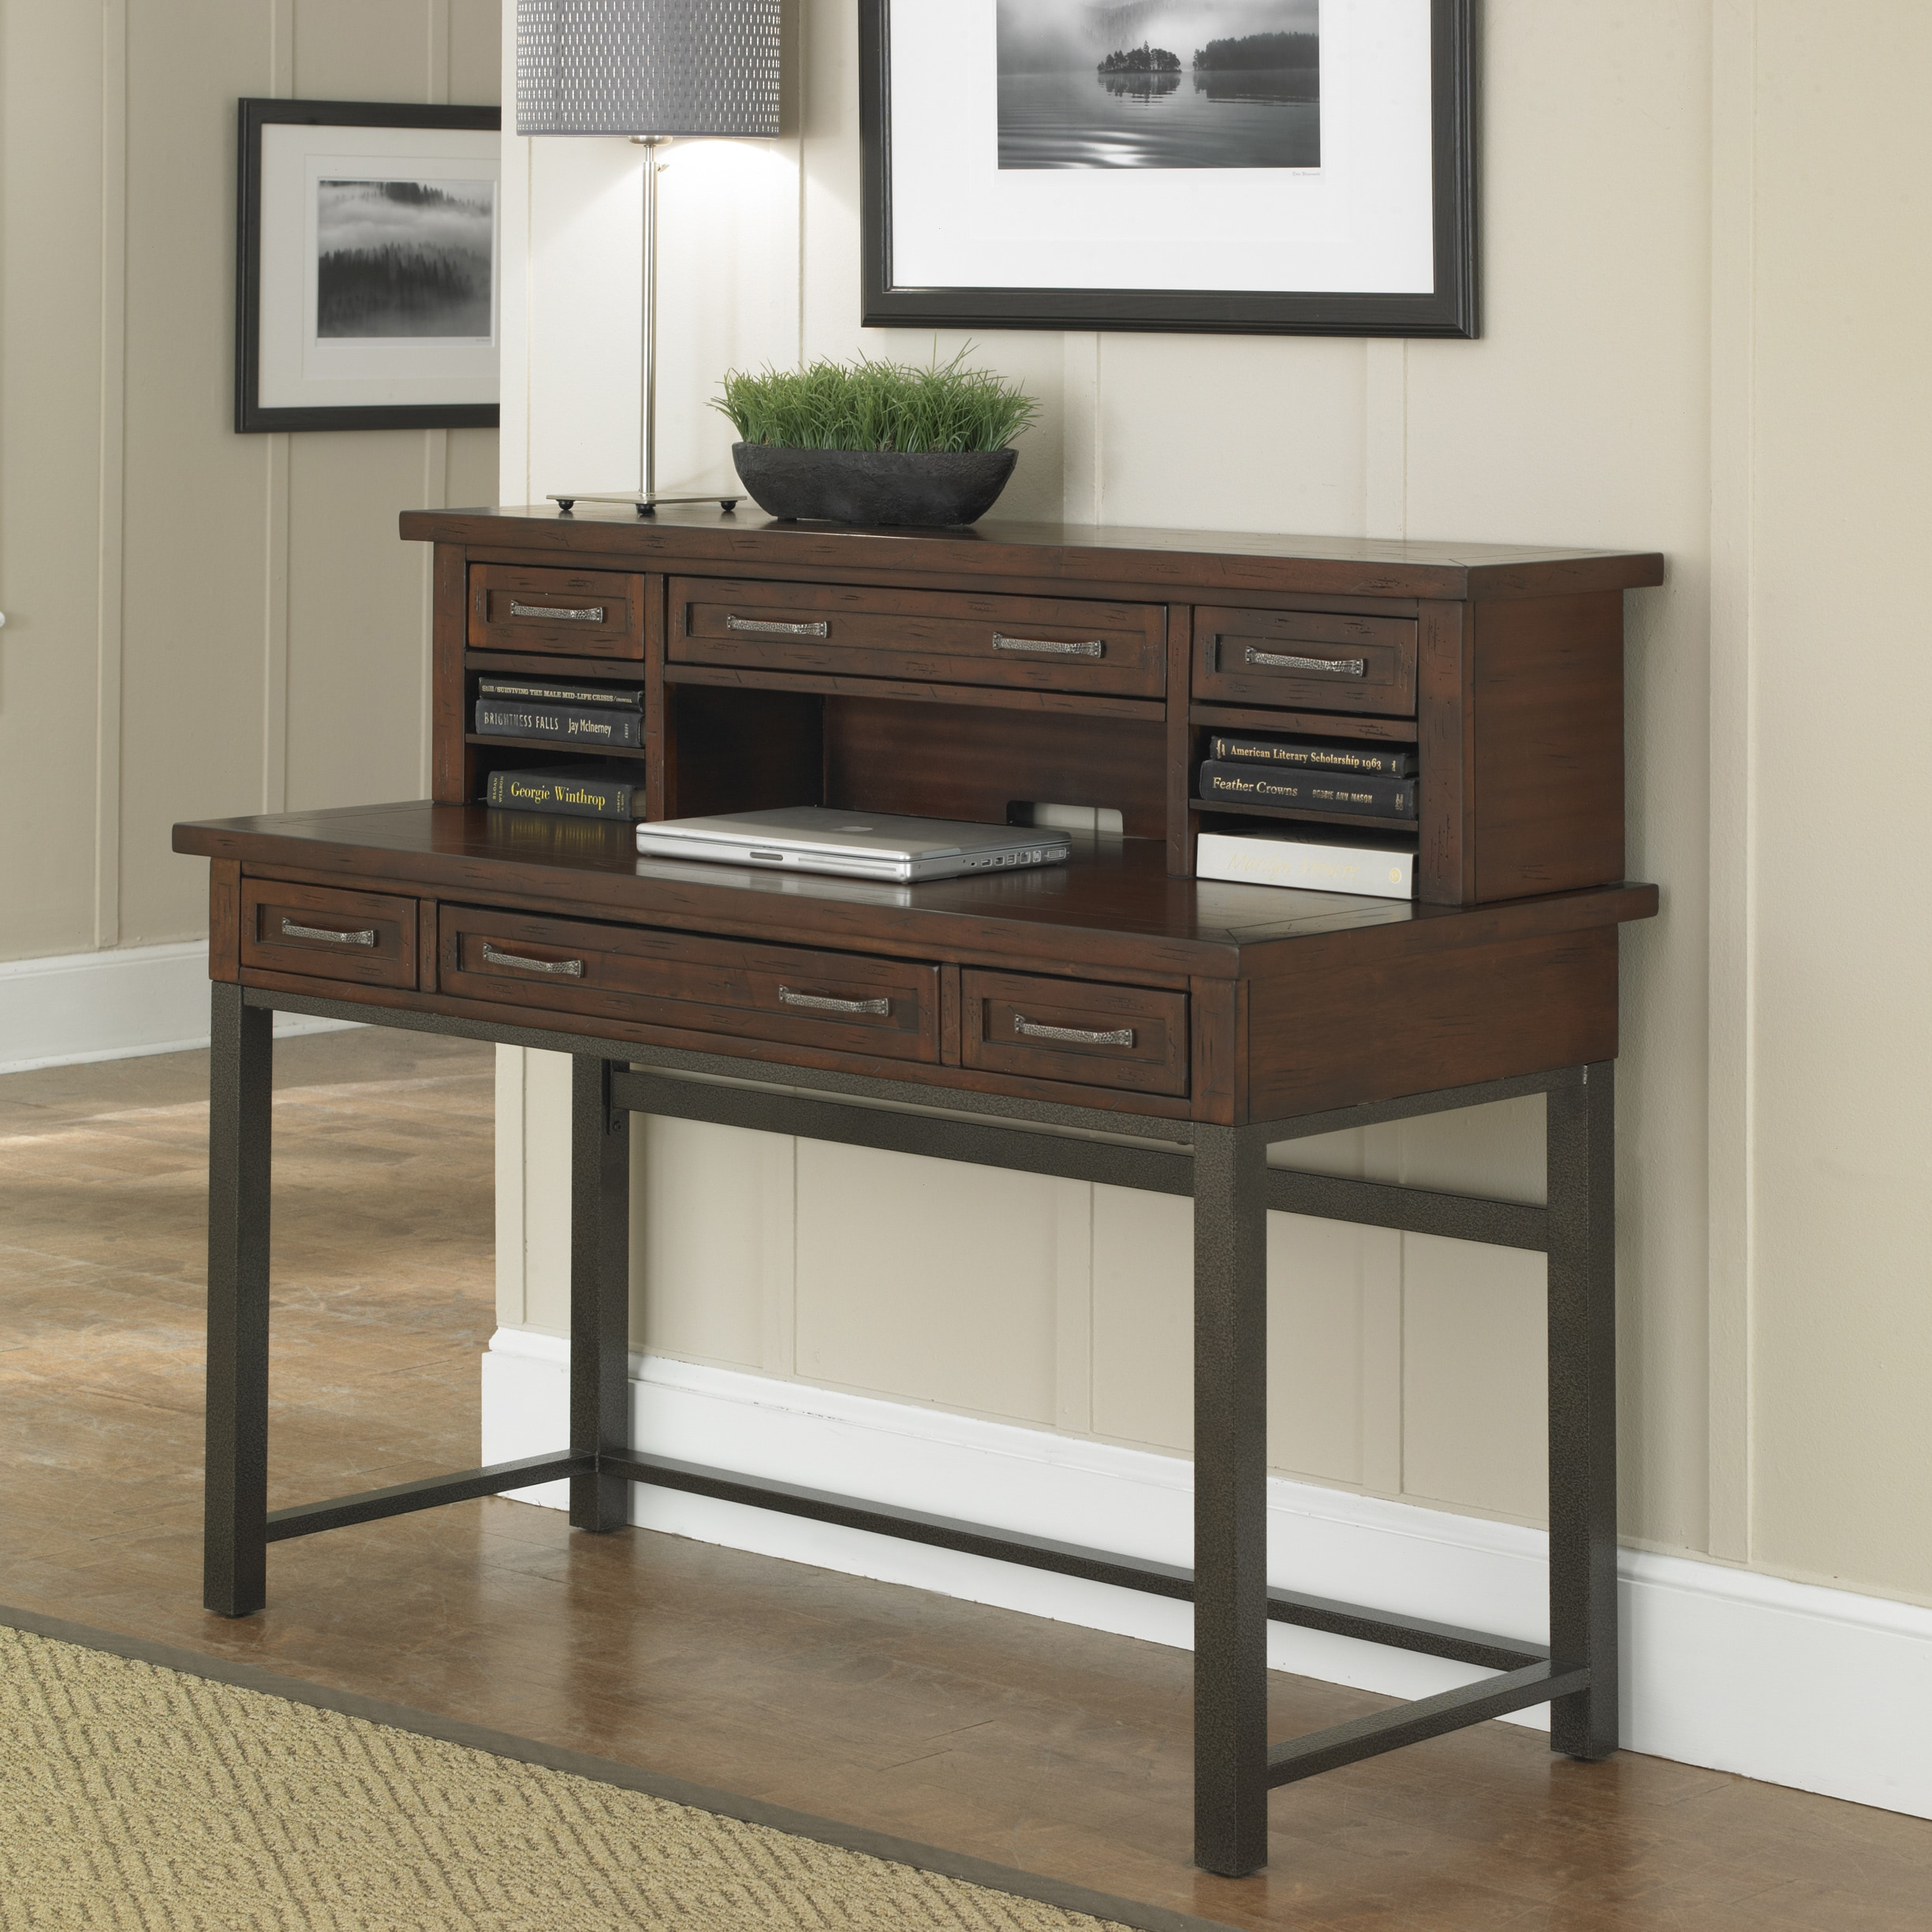 ideas curved beautiful executive heritage desk hutch looking with office enjoyable clic sauder inspiration hill